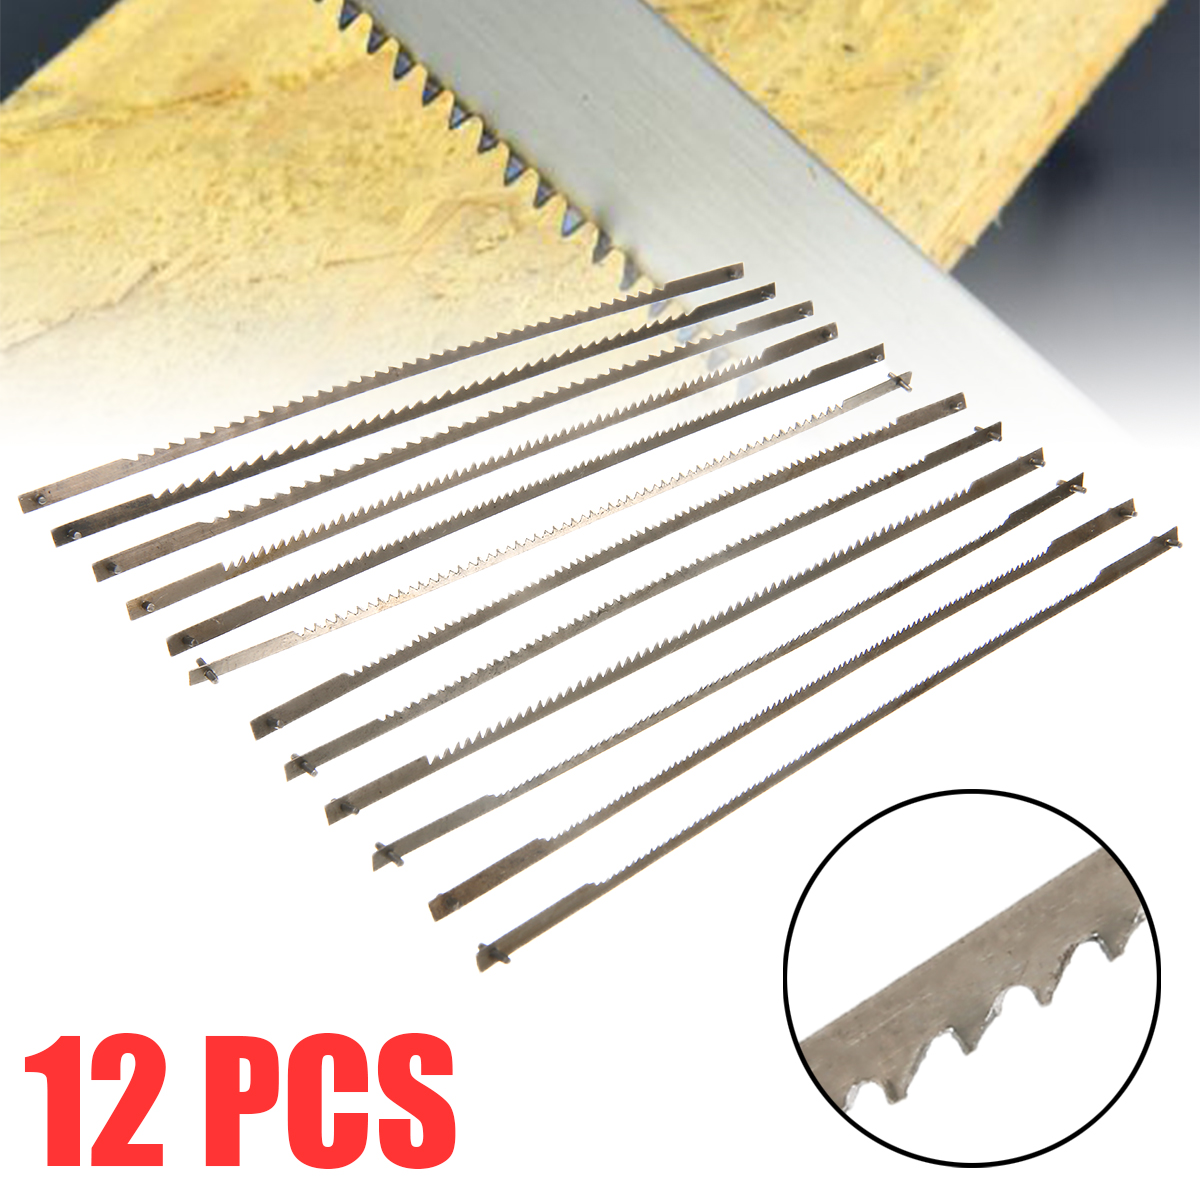 "12pcs 5"" 10/15/18/24 Teeth Pinned Scroll Saw Blades Woodworking Saw Blades Power Tools Accessories-in Saw Blades from Tools"